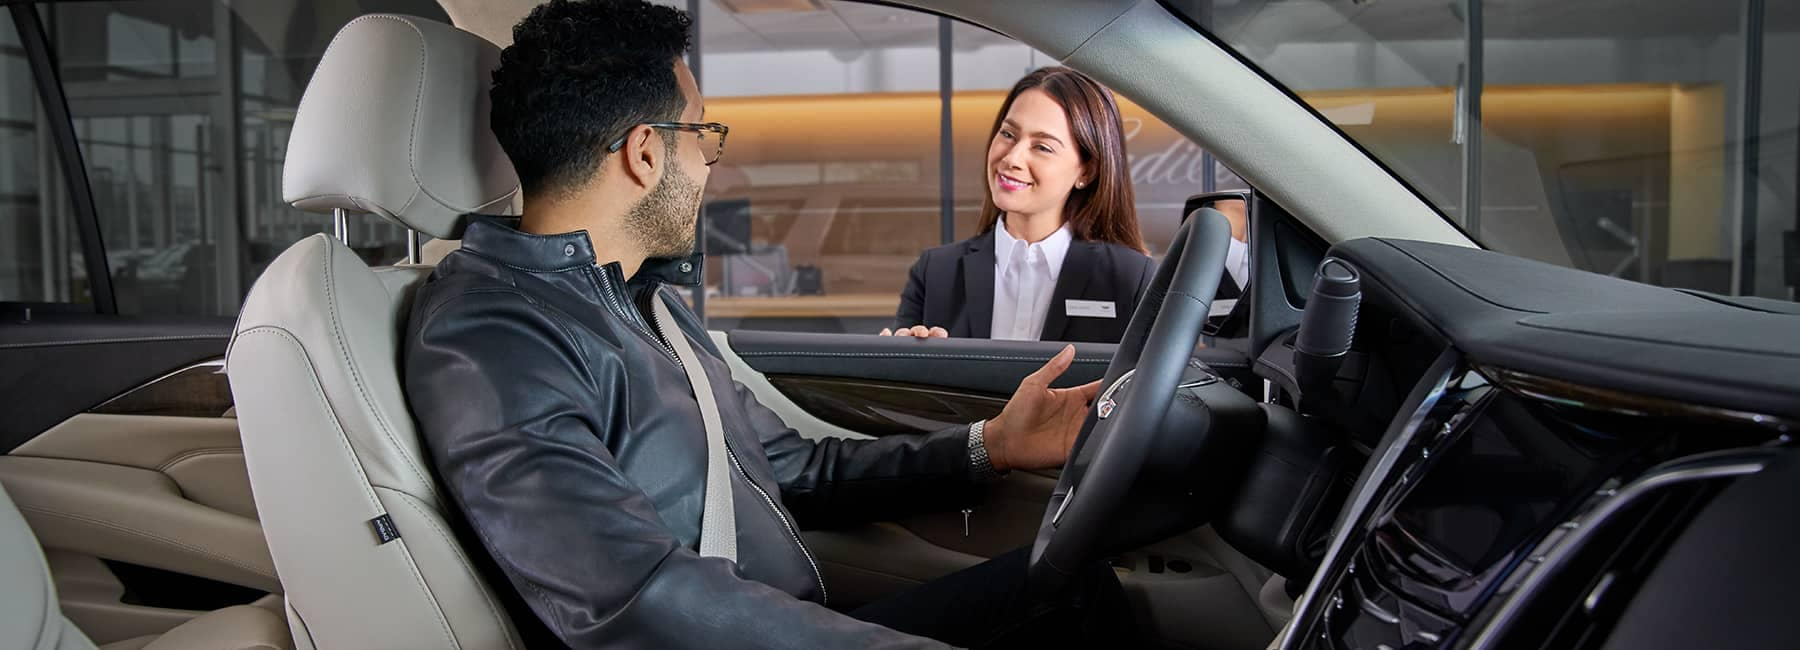 sales person showing a vehicle